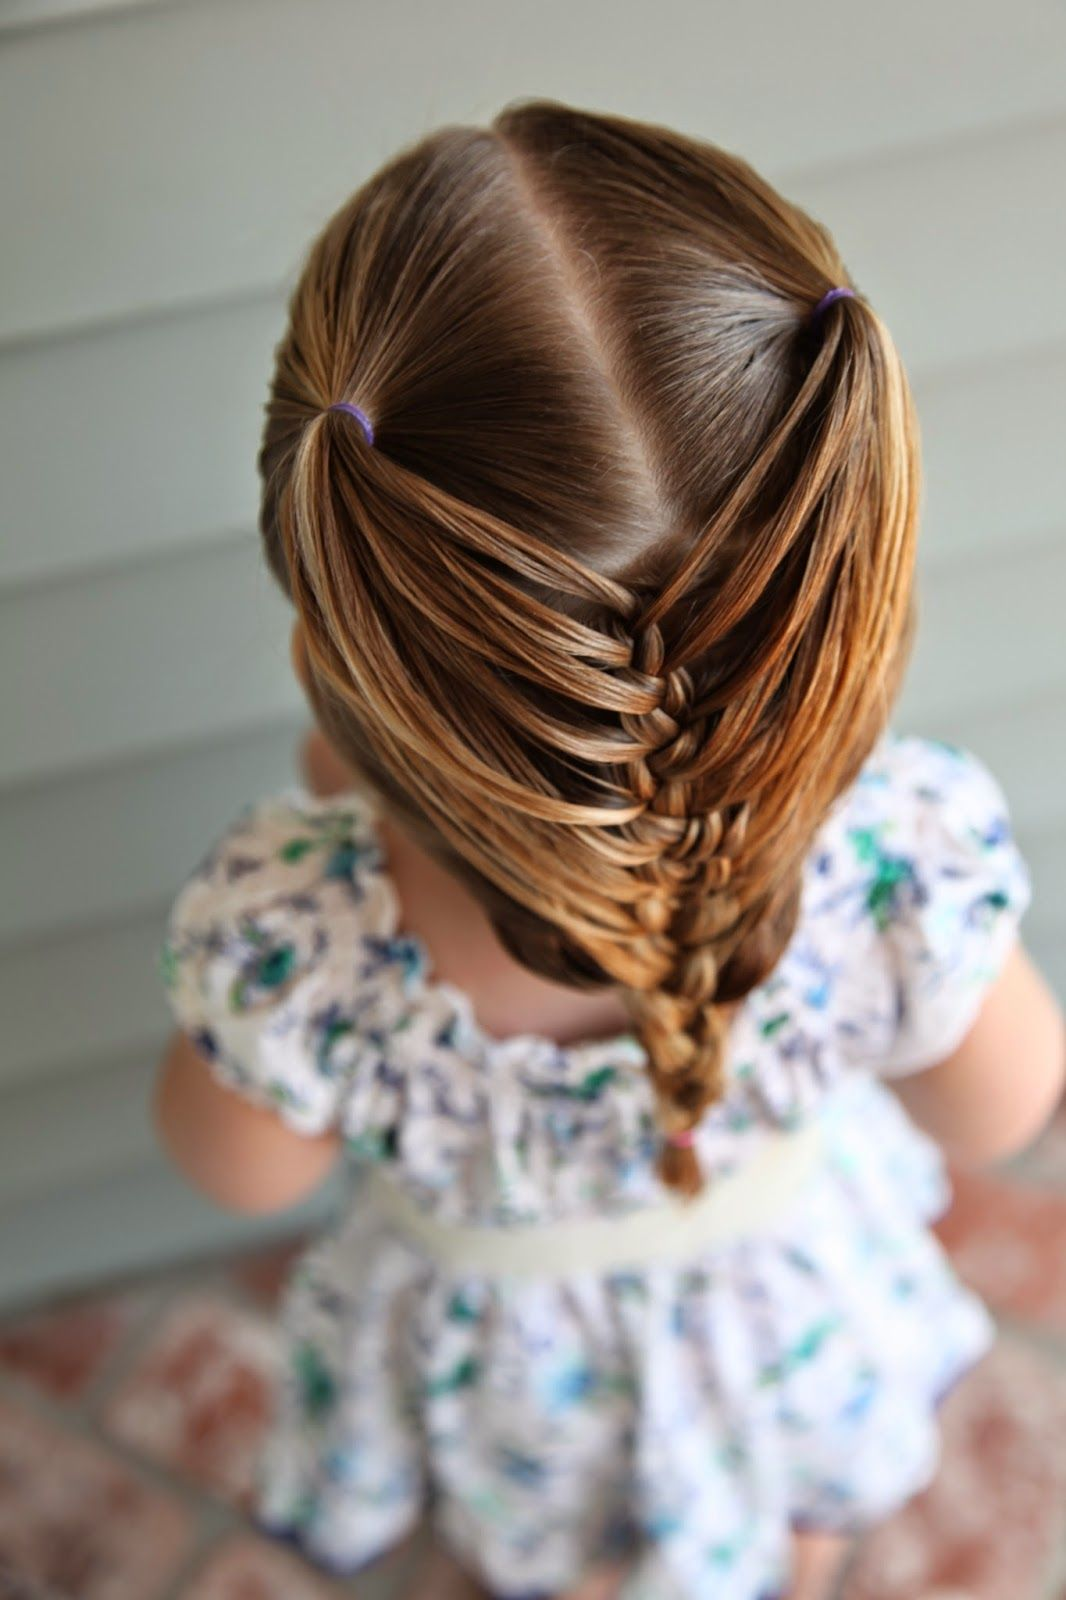 abella's braids: help for your toddler's hair! | addy hair